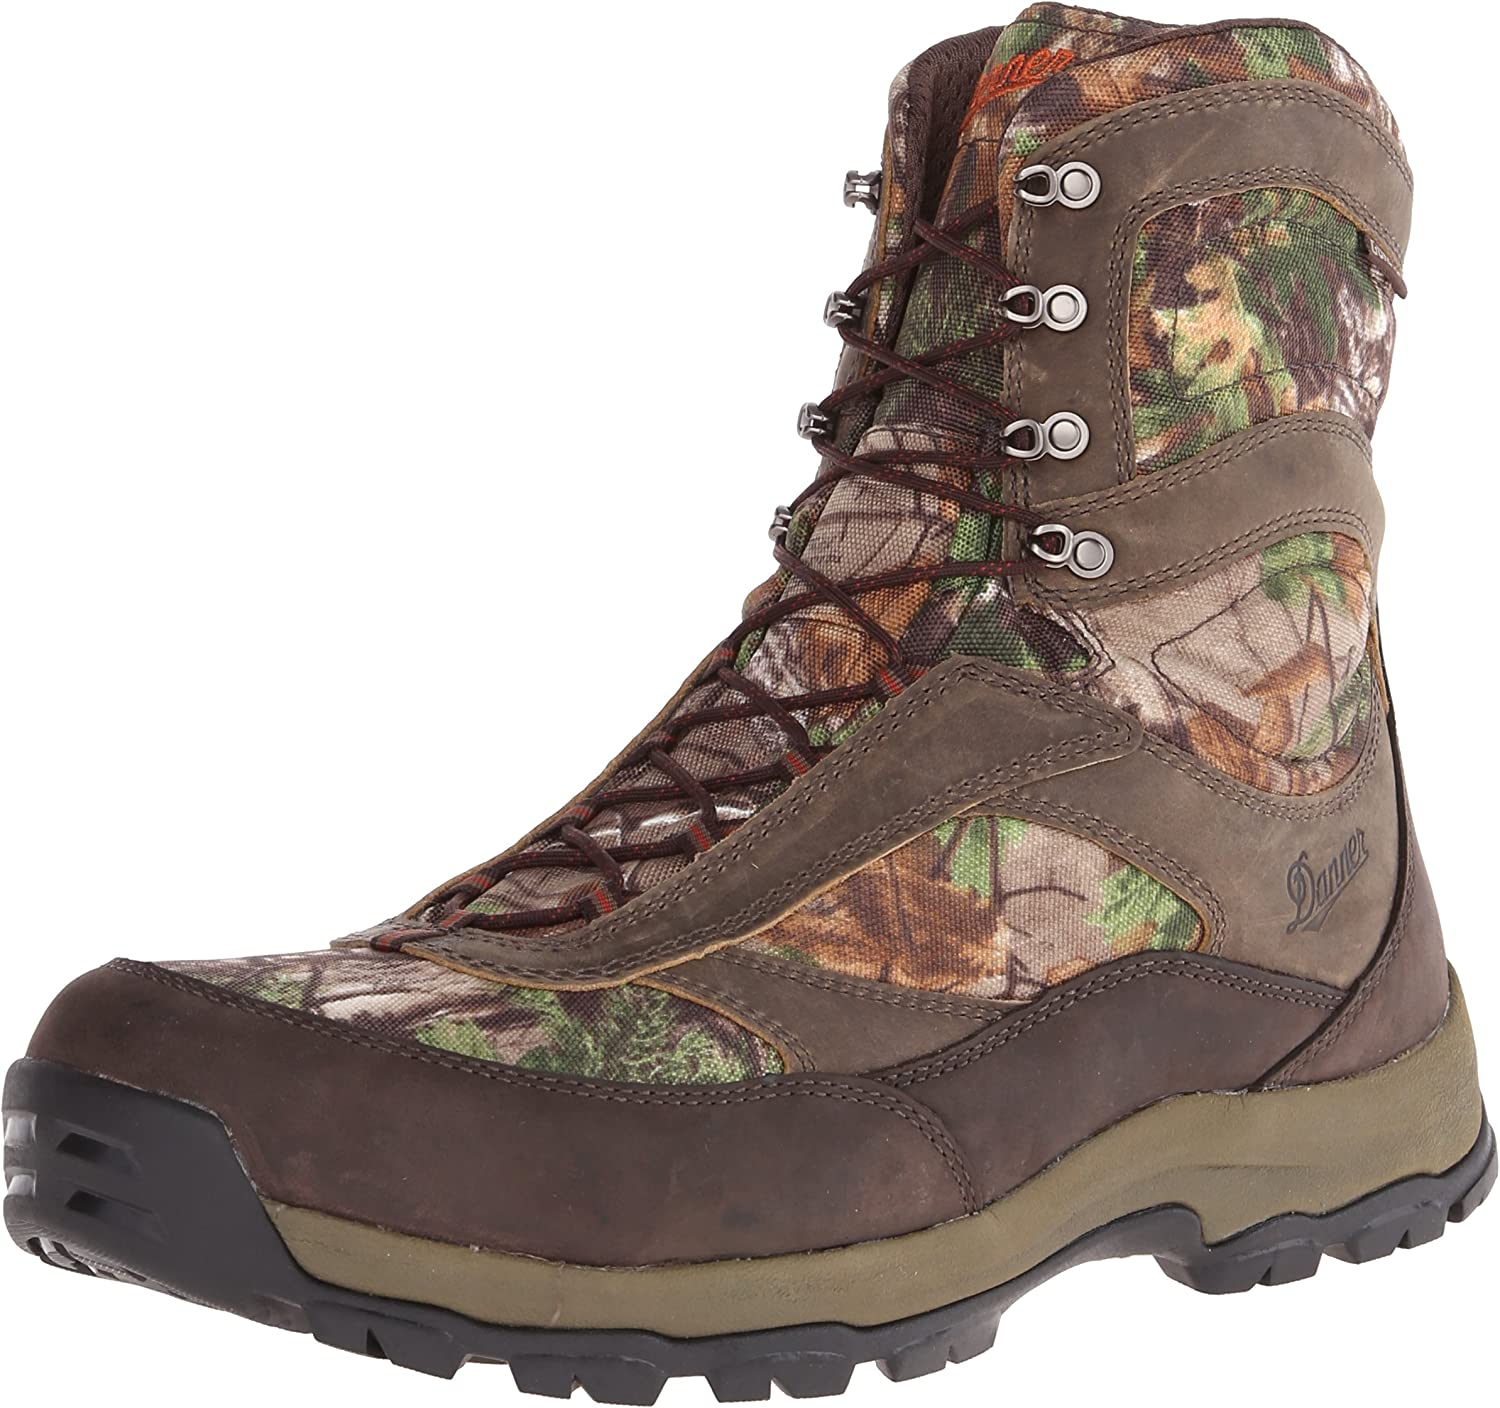 Danner Men s High Ground 8 Realtree Xtra Hunting Boot,Brown Green,9.5 EE US